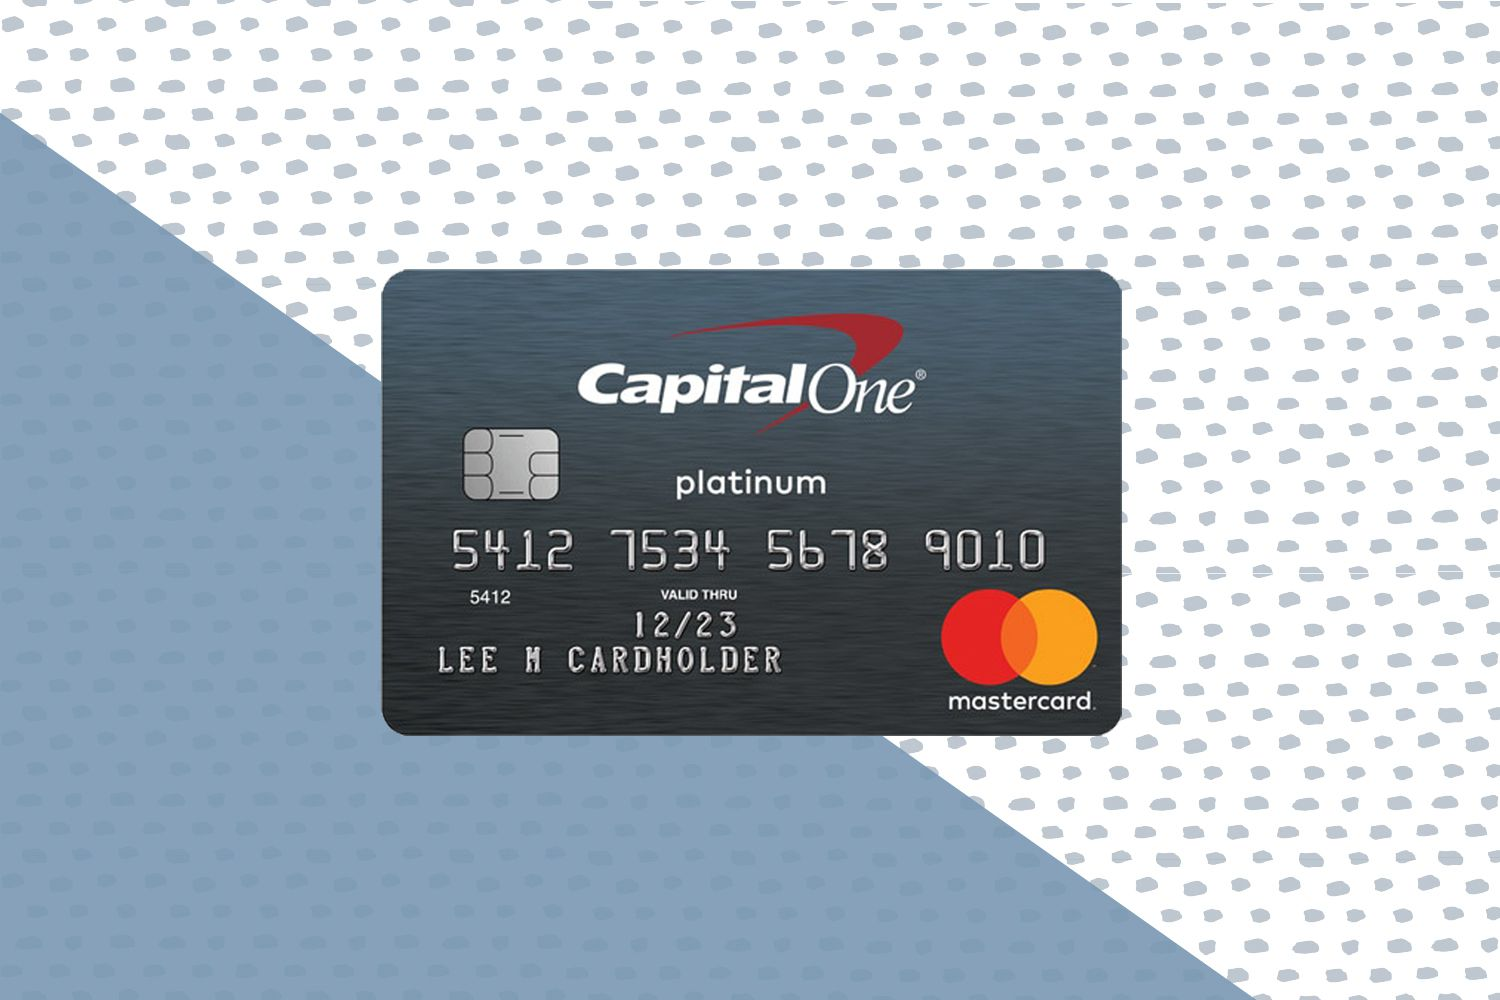 capital 1 credit card contact number